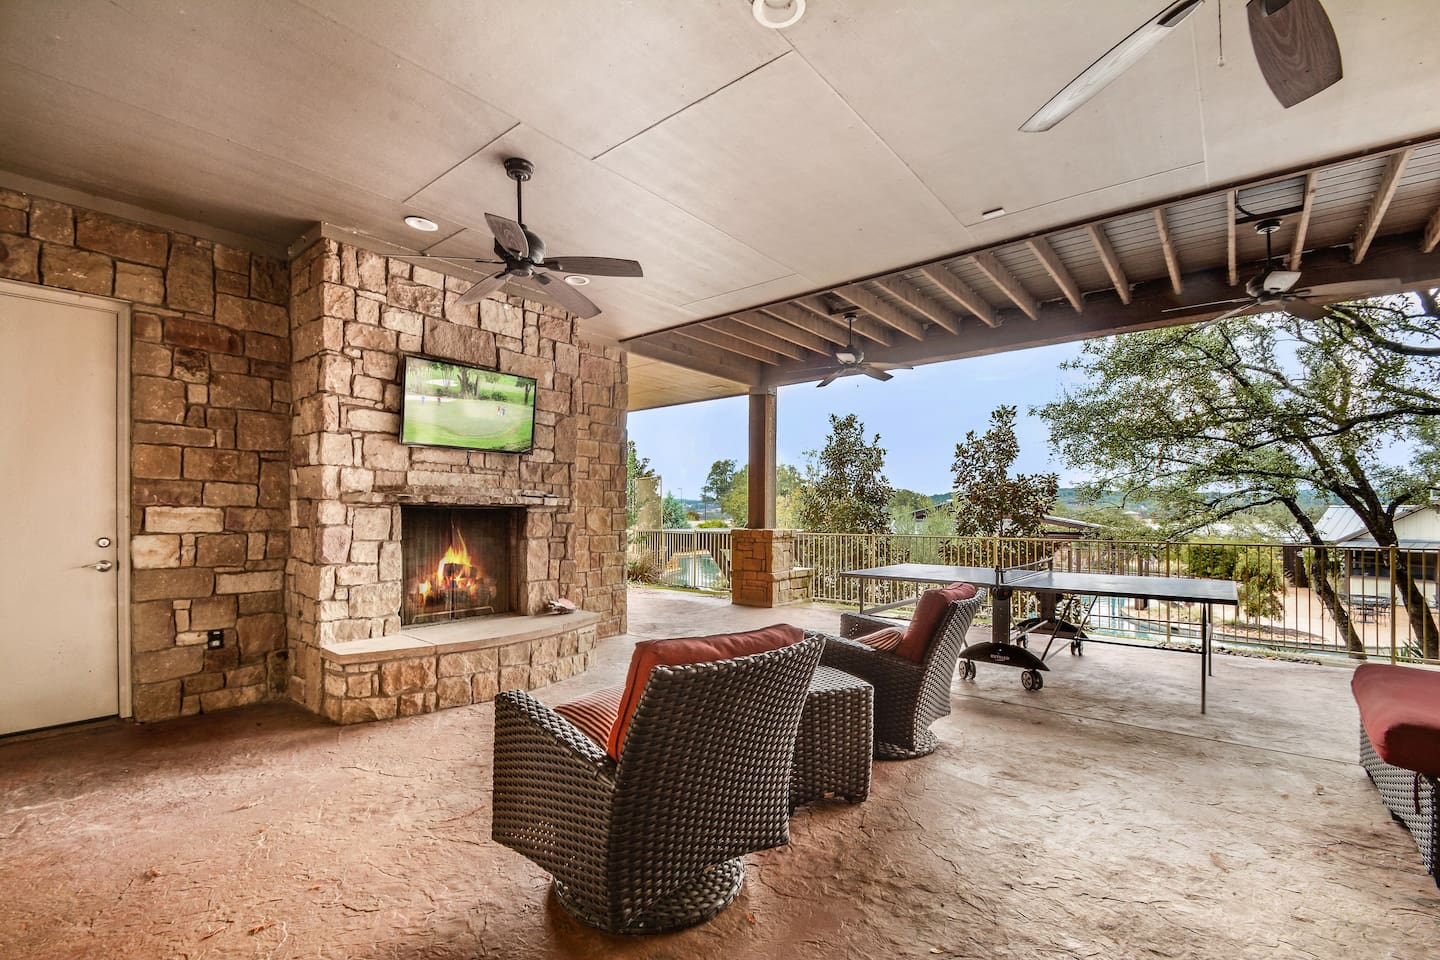 Welcome to Spicewood! This villa is professionally managed by TurnKey Vacation Rentals.